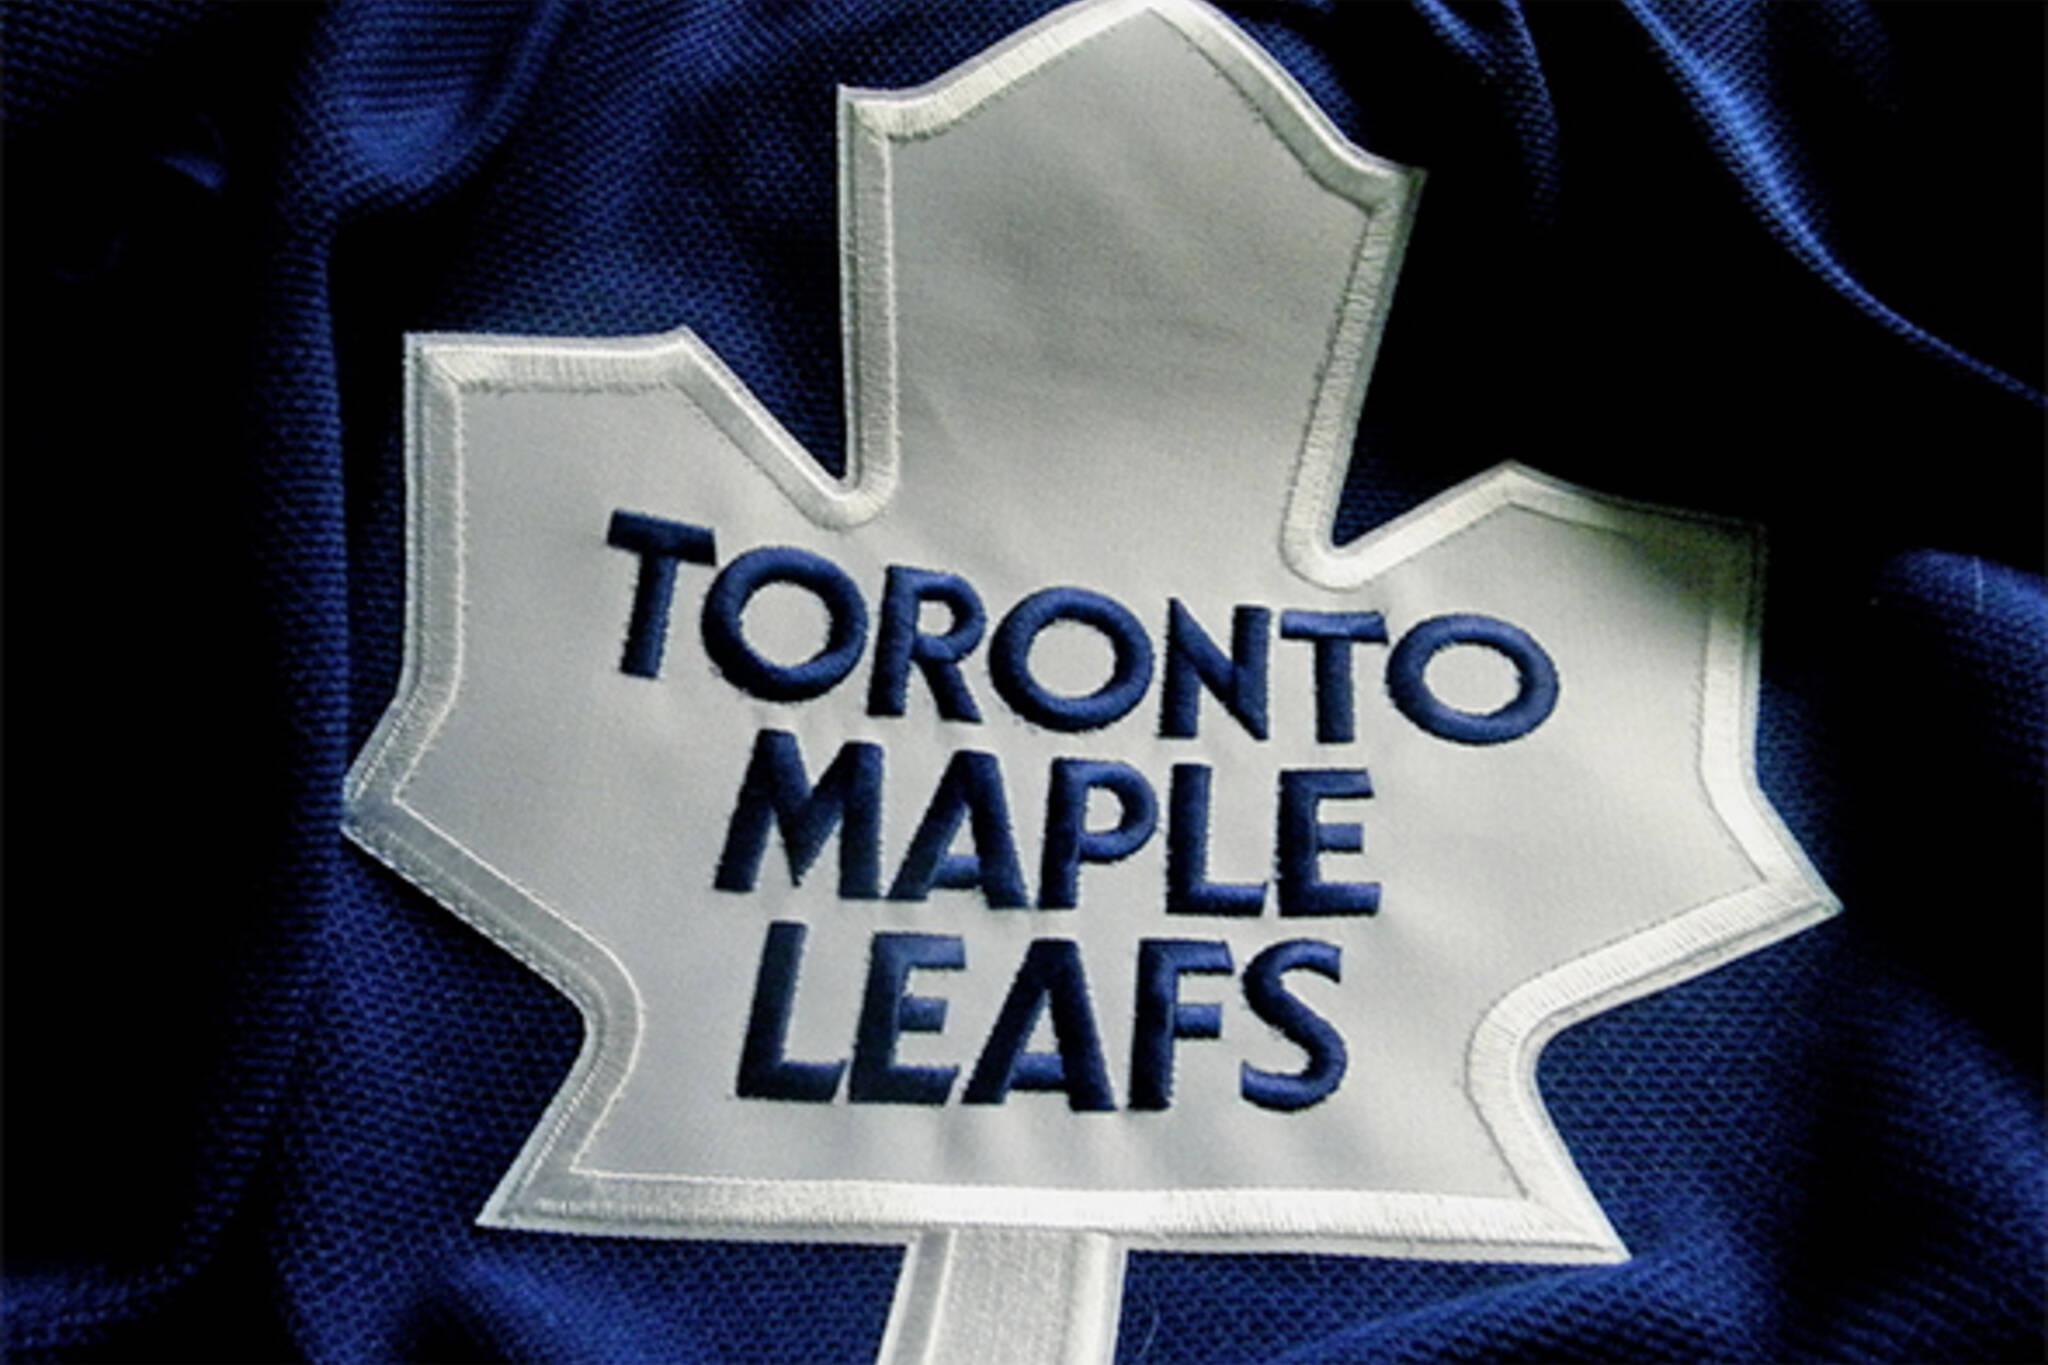 Leafs jersey ice